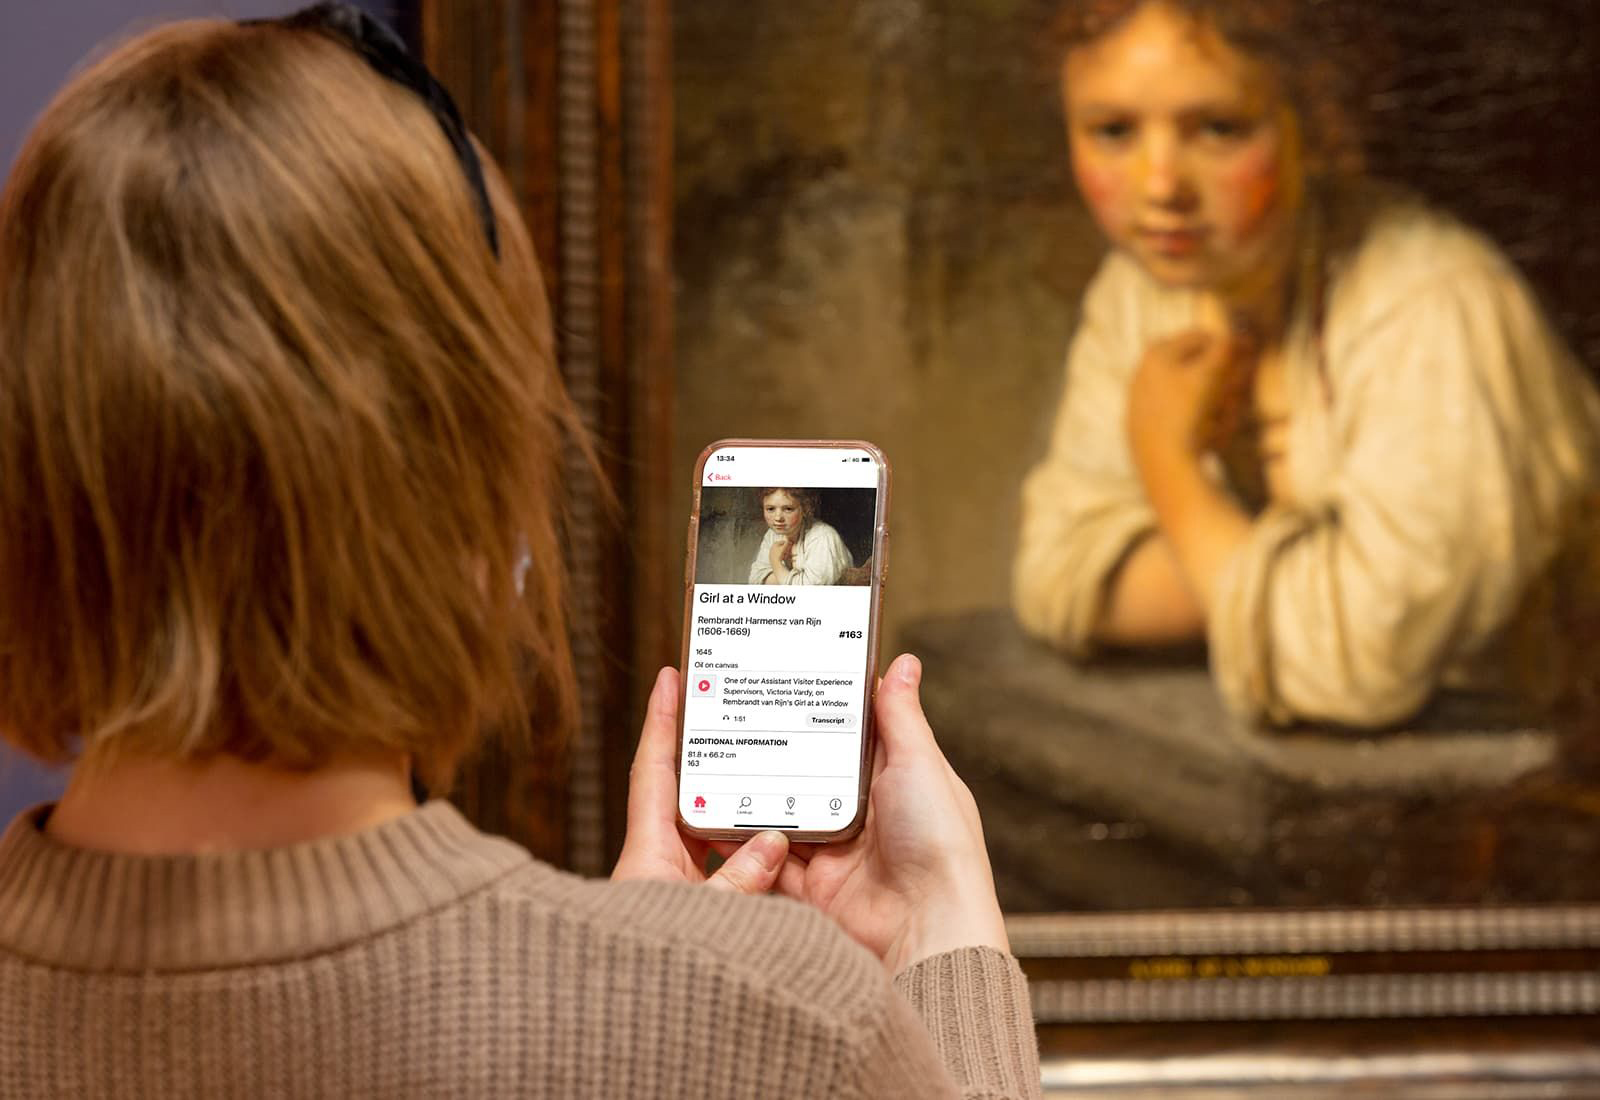 The Bloomberg Connects app featuring Rembrandt's Girl at a Window